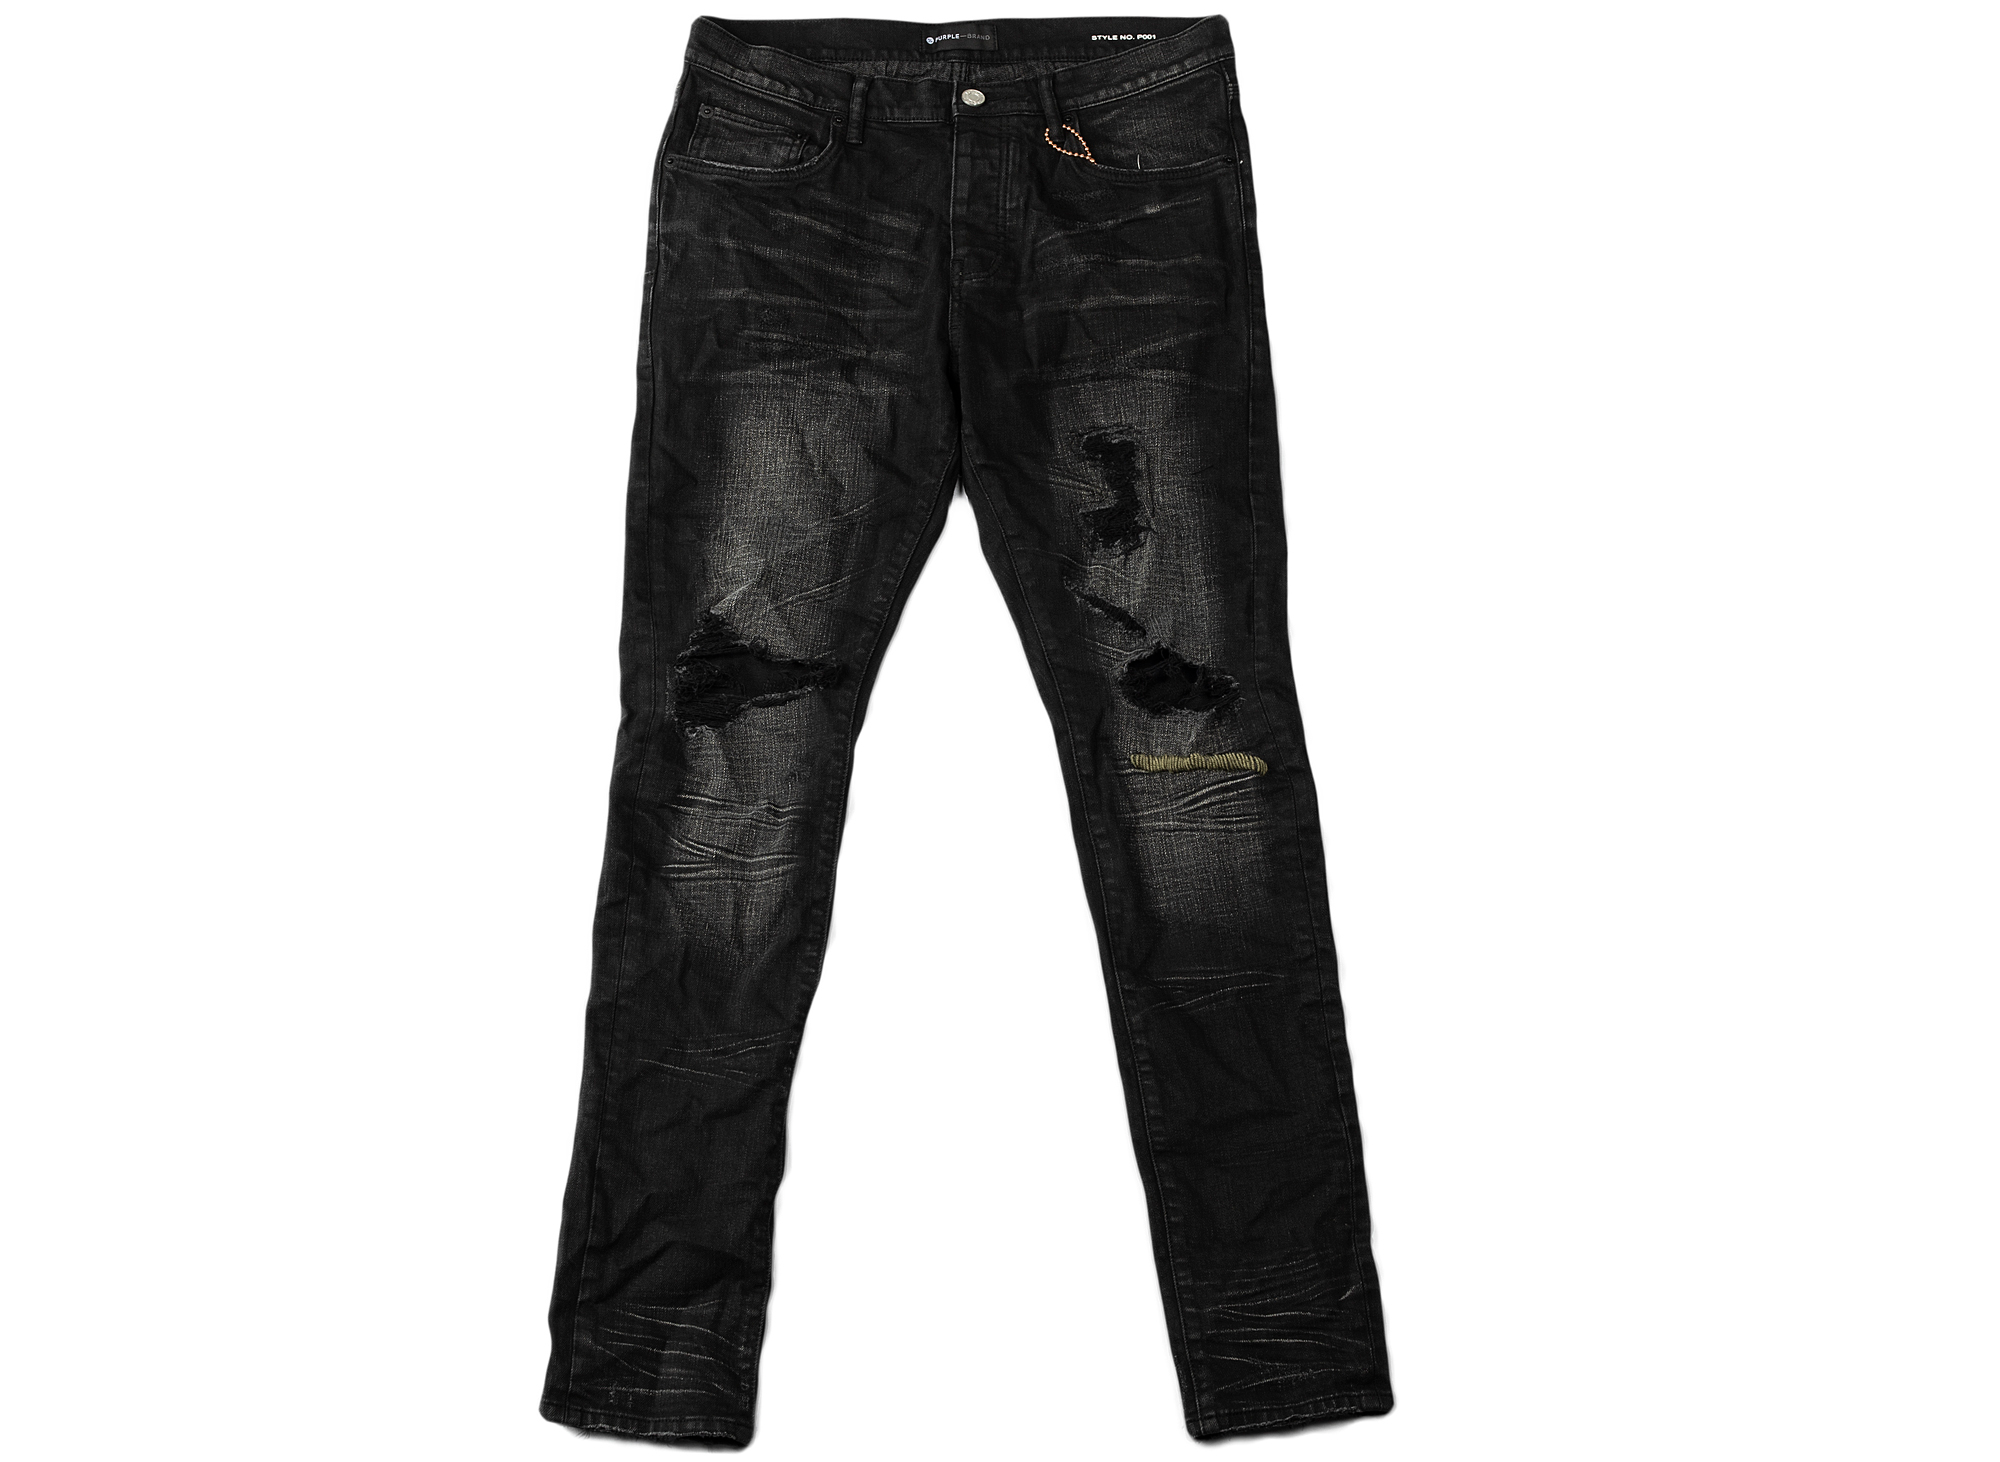 Purple Brand Black Destroyed Slim Fit Jeans xld